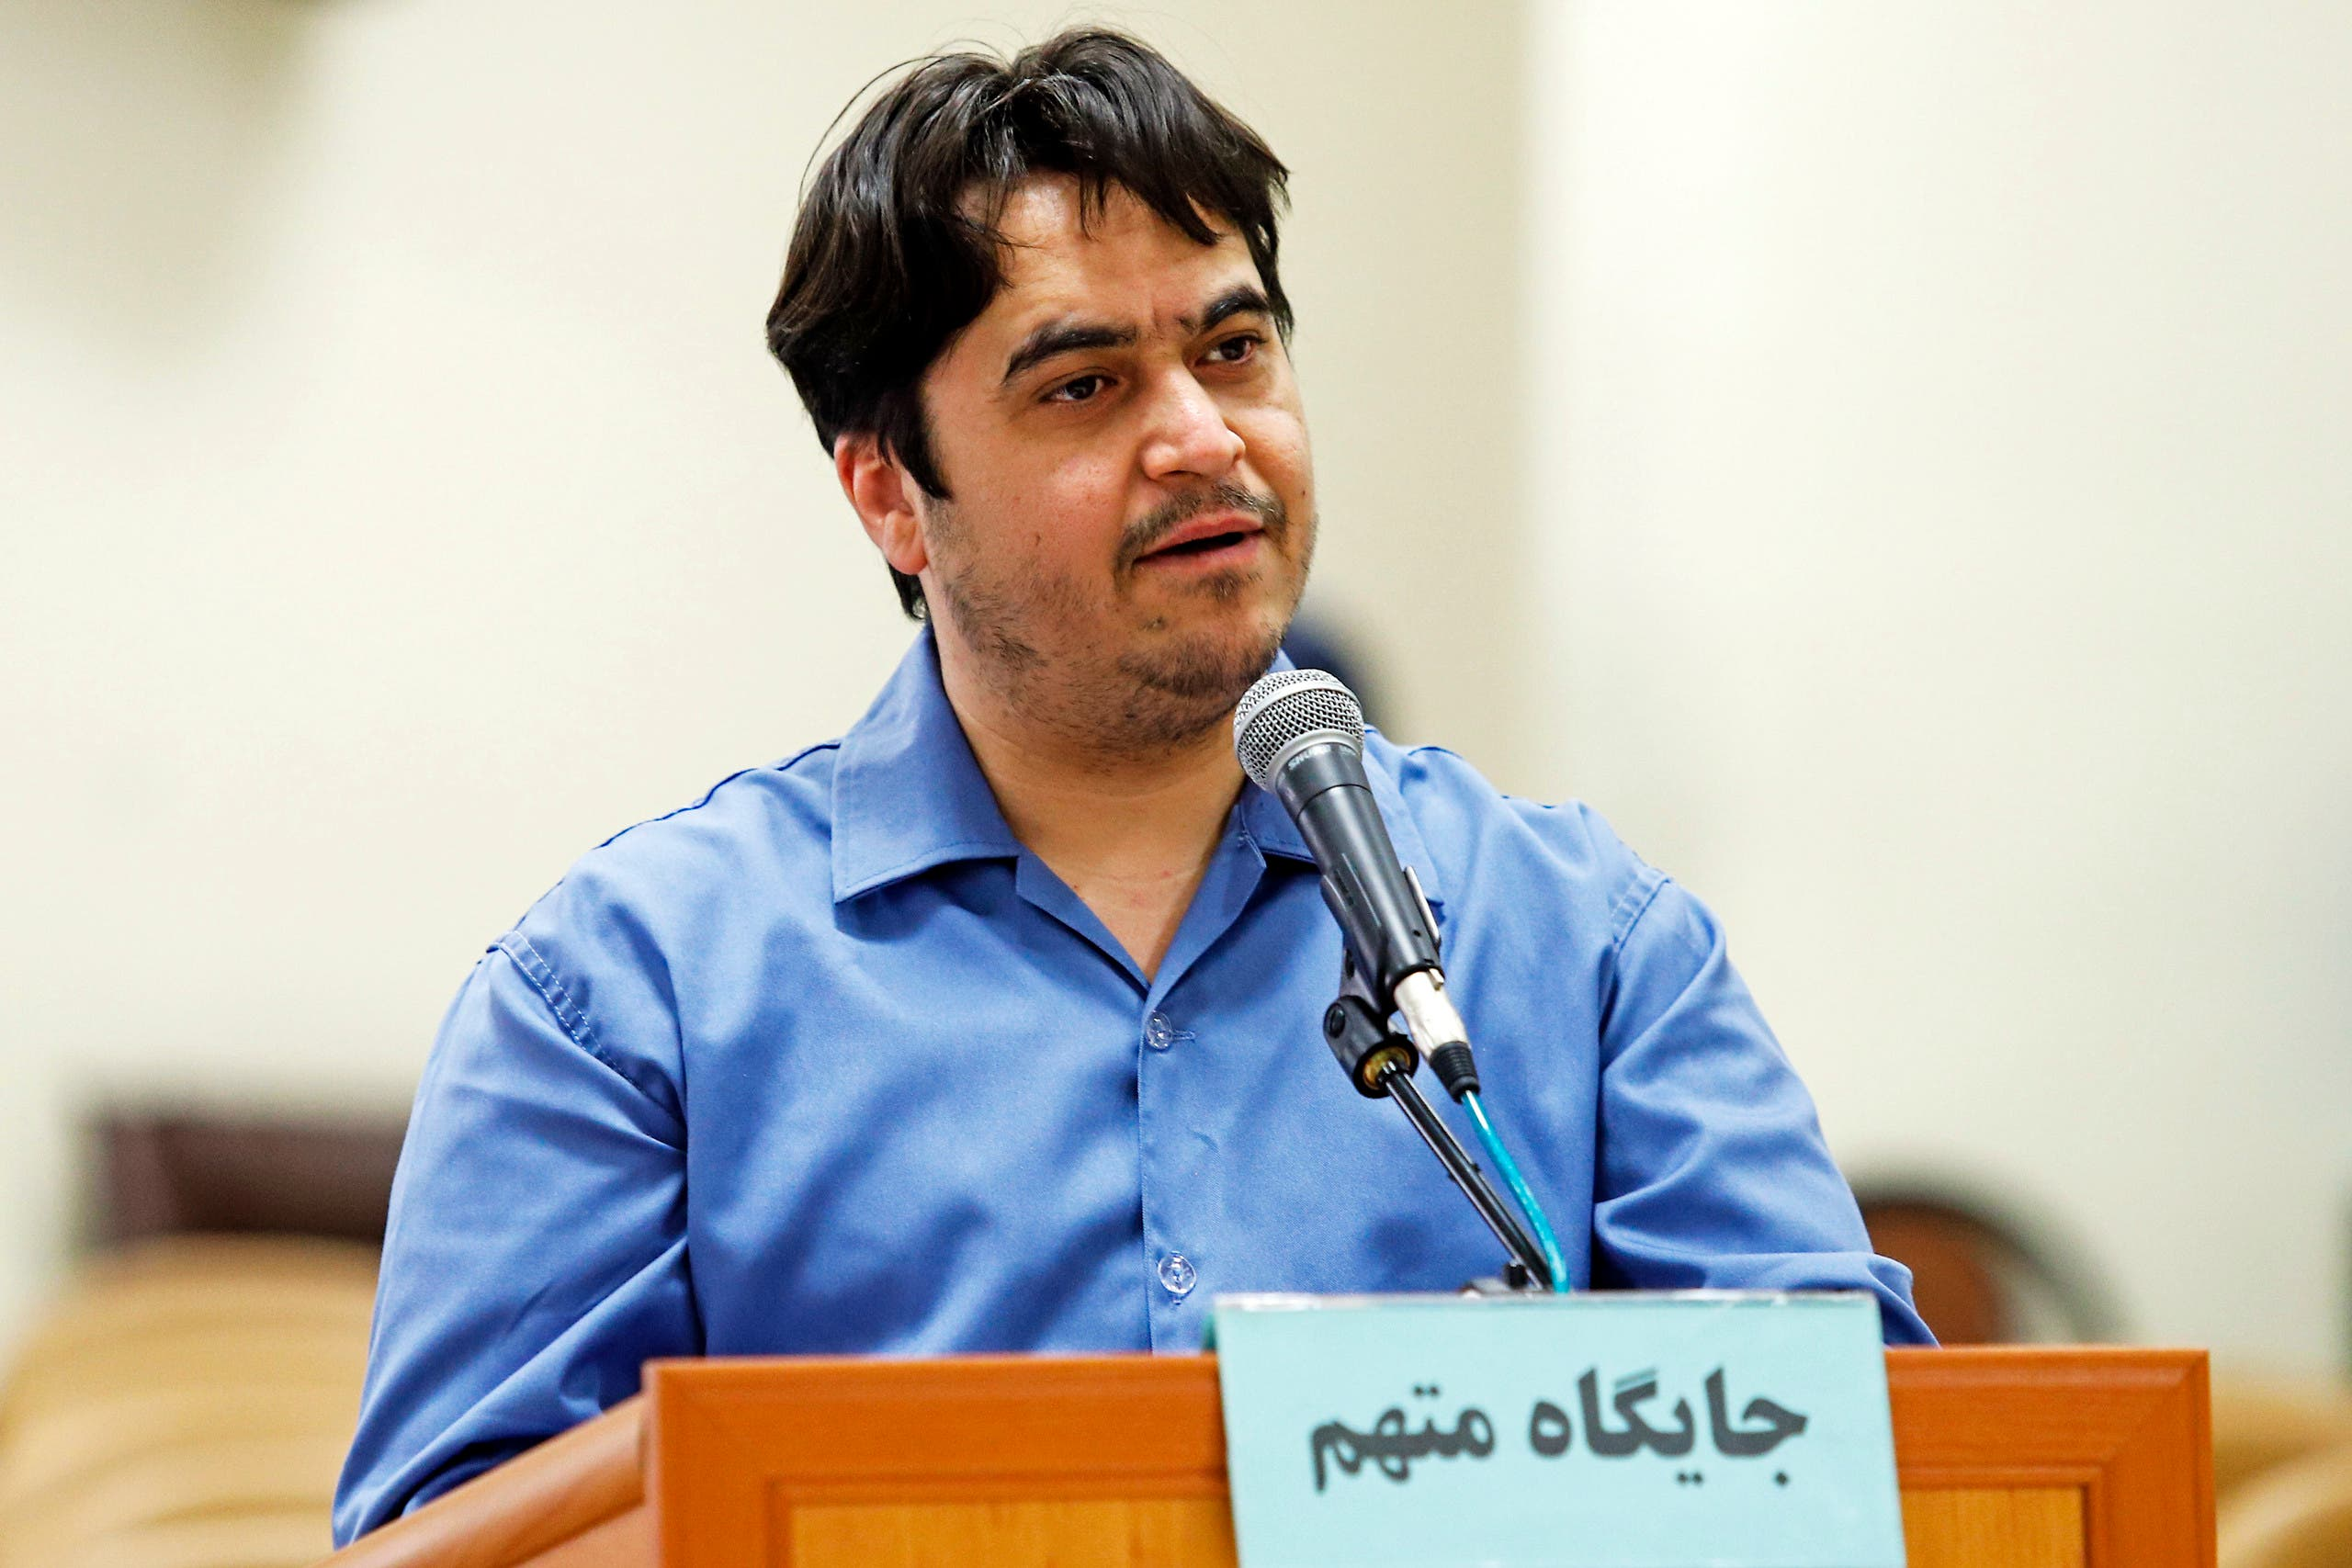 Ruhollah Zam speaks during his trial at Iran's Revolutionary Court in Tehran on June 30, 2020. (AFP)